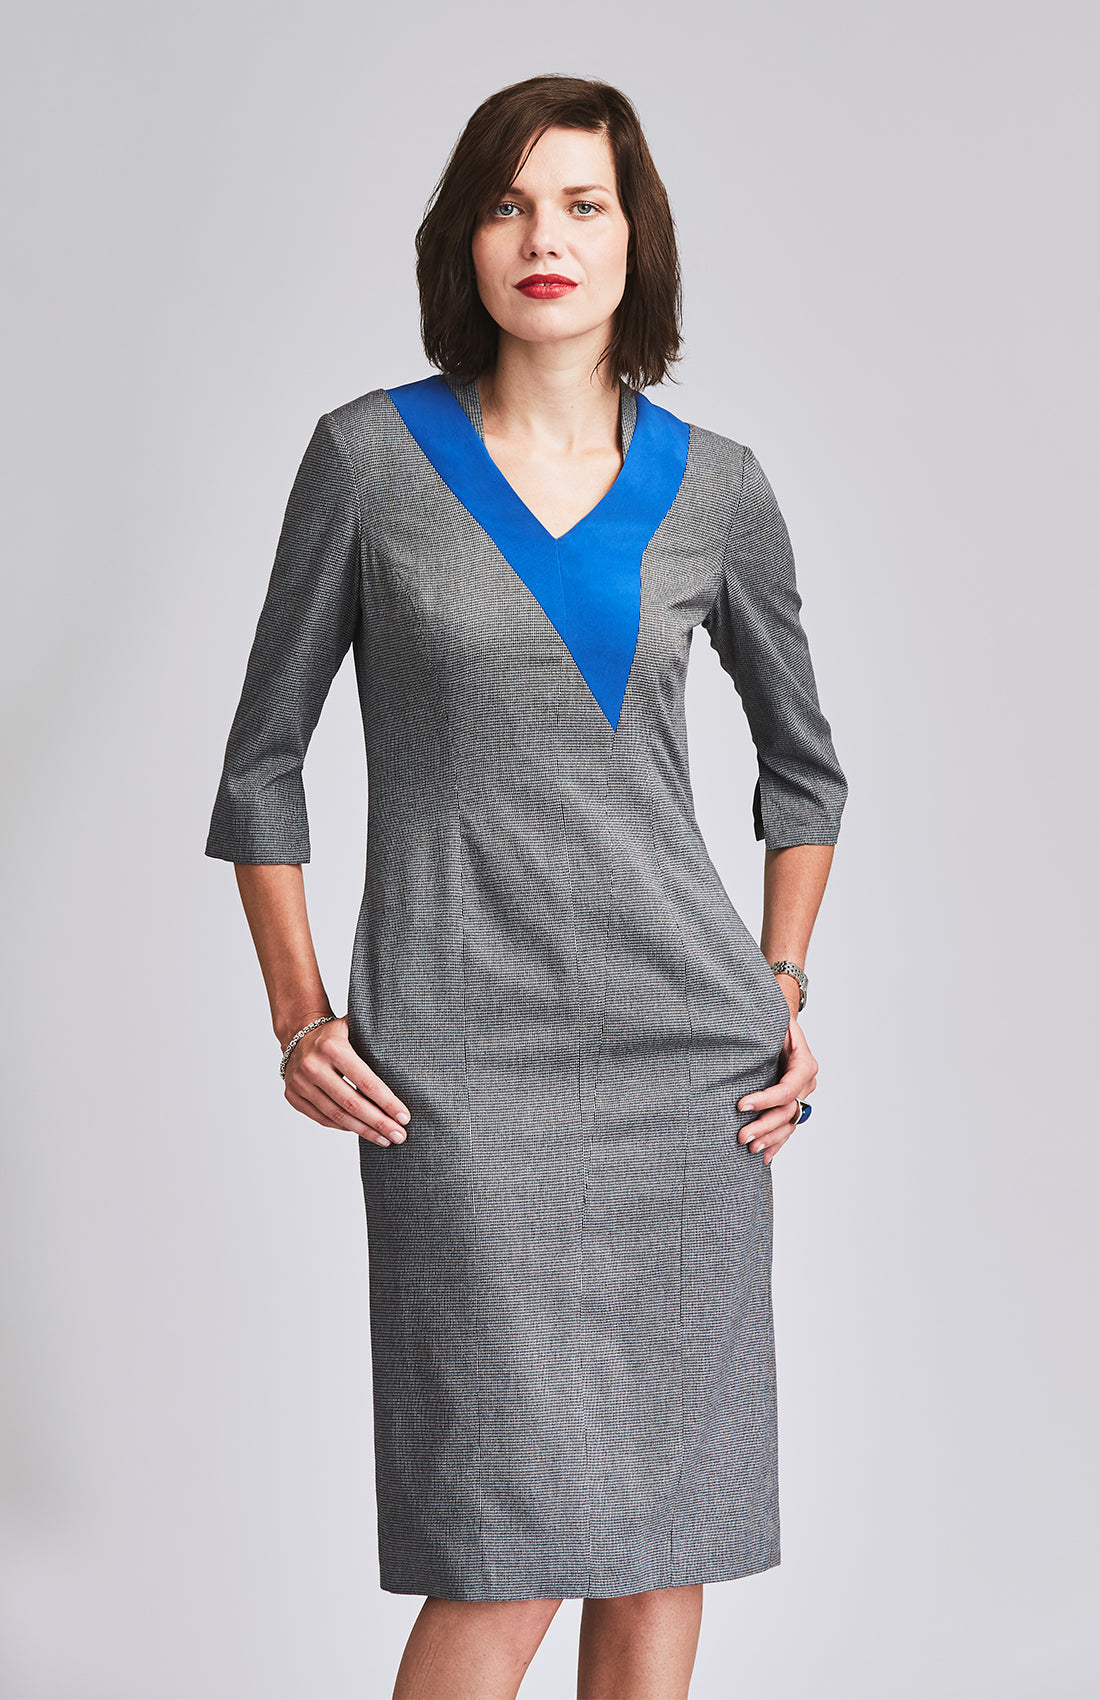 Herringbone office dress knee length